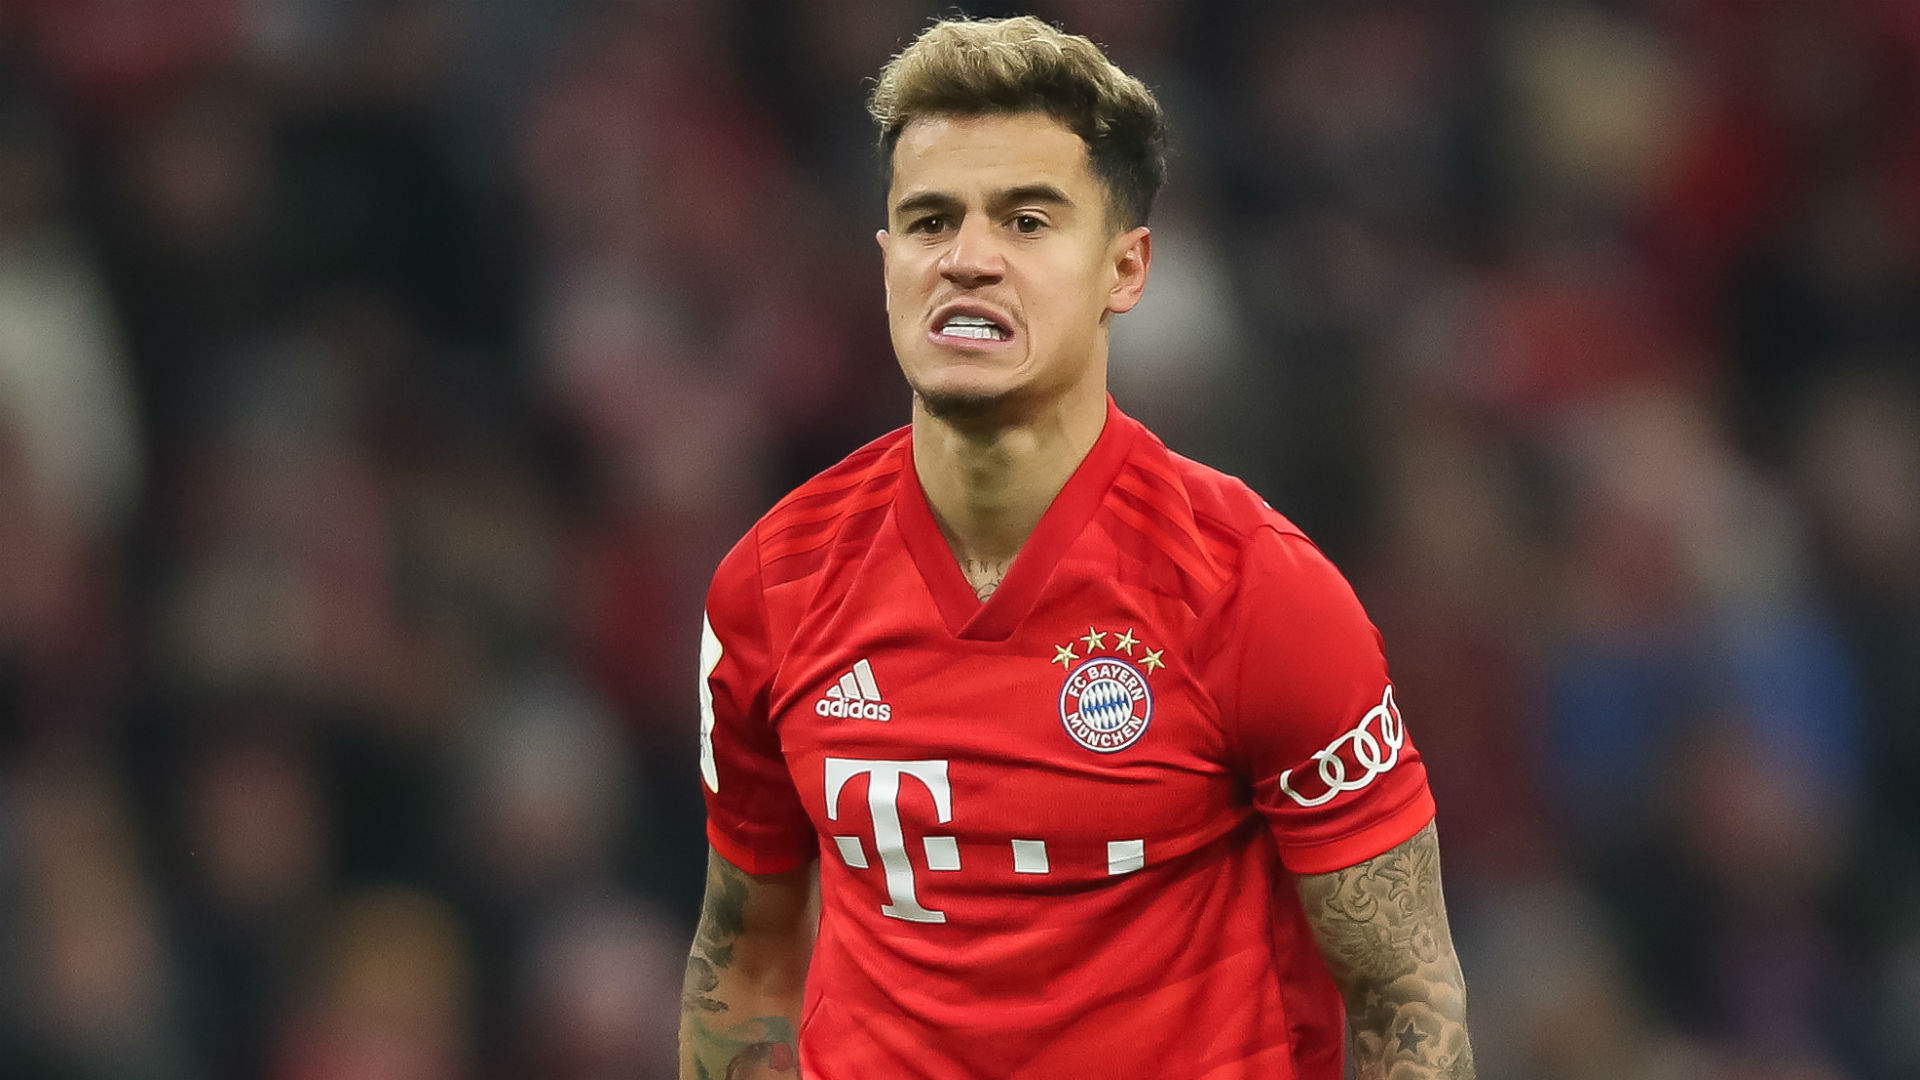 Bayern Munich confirm their option to buy Coutinho has expired